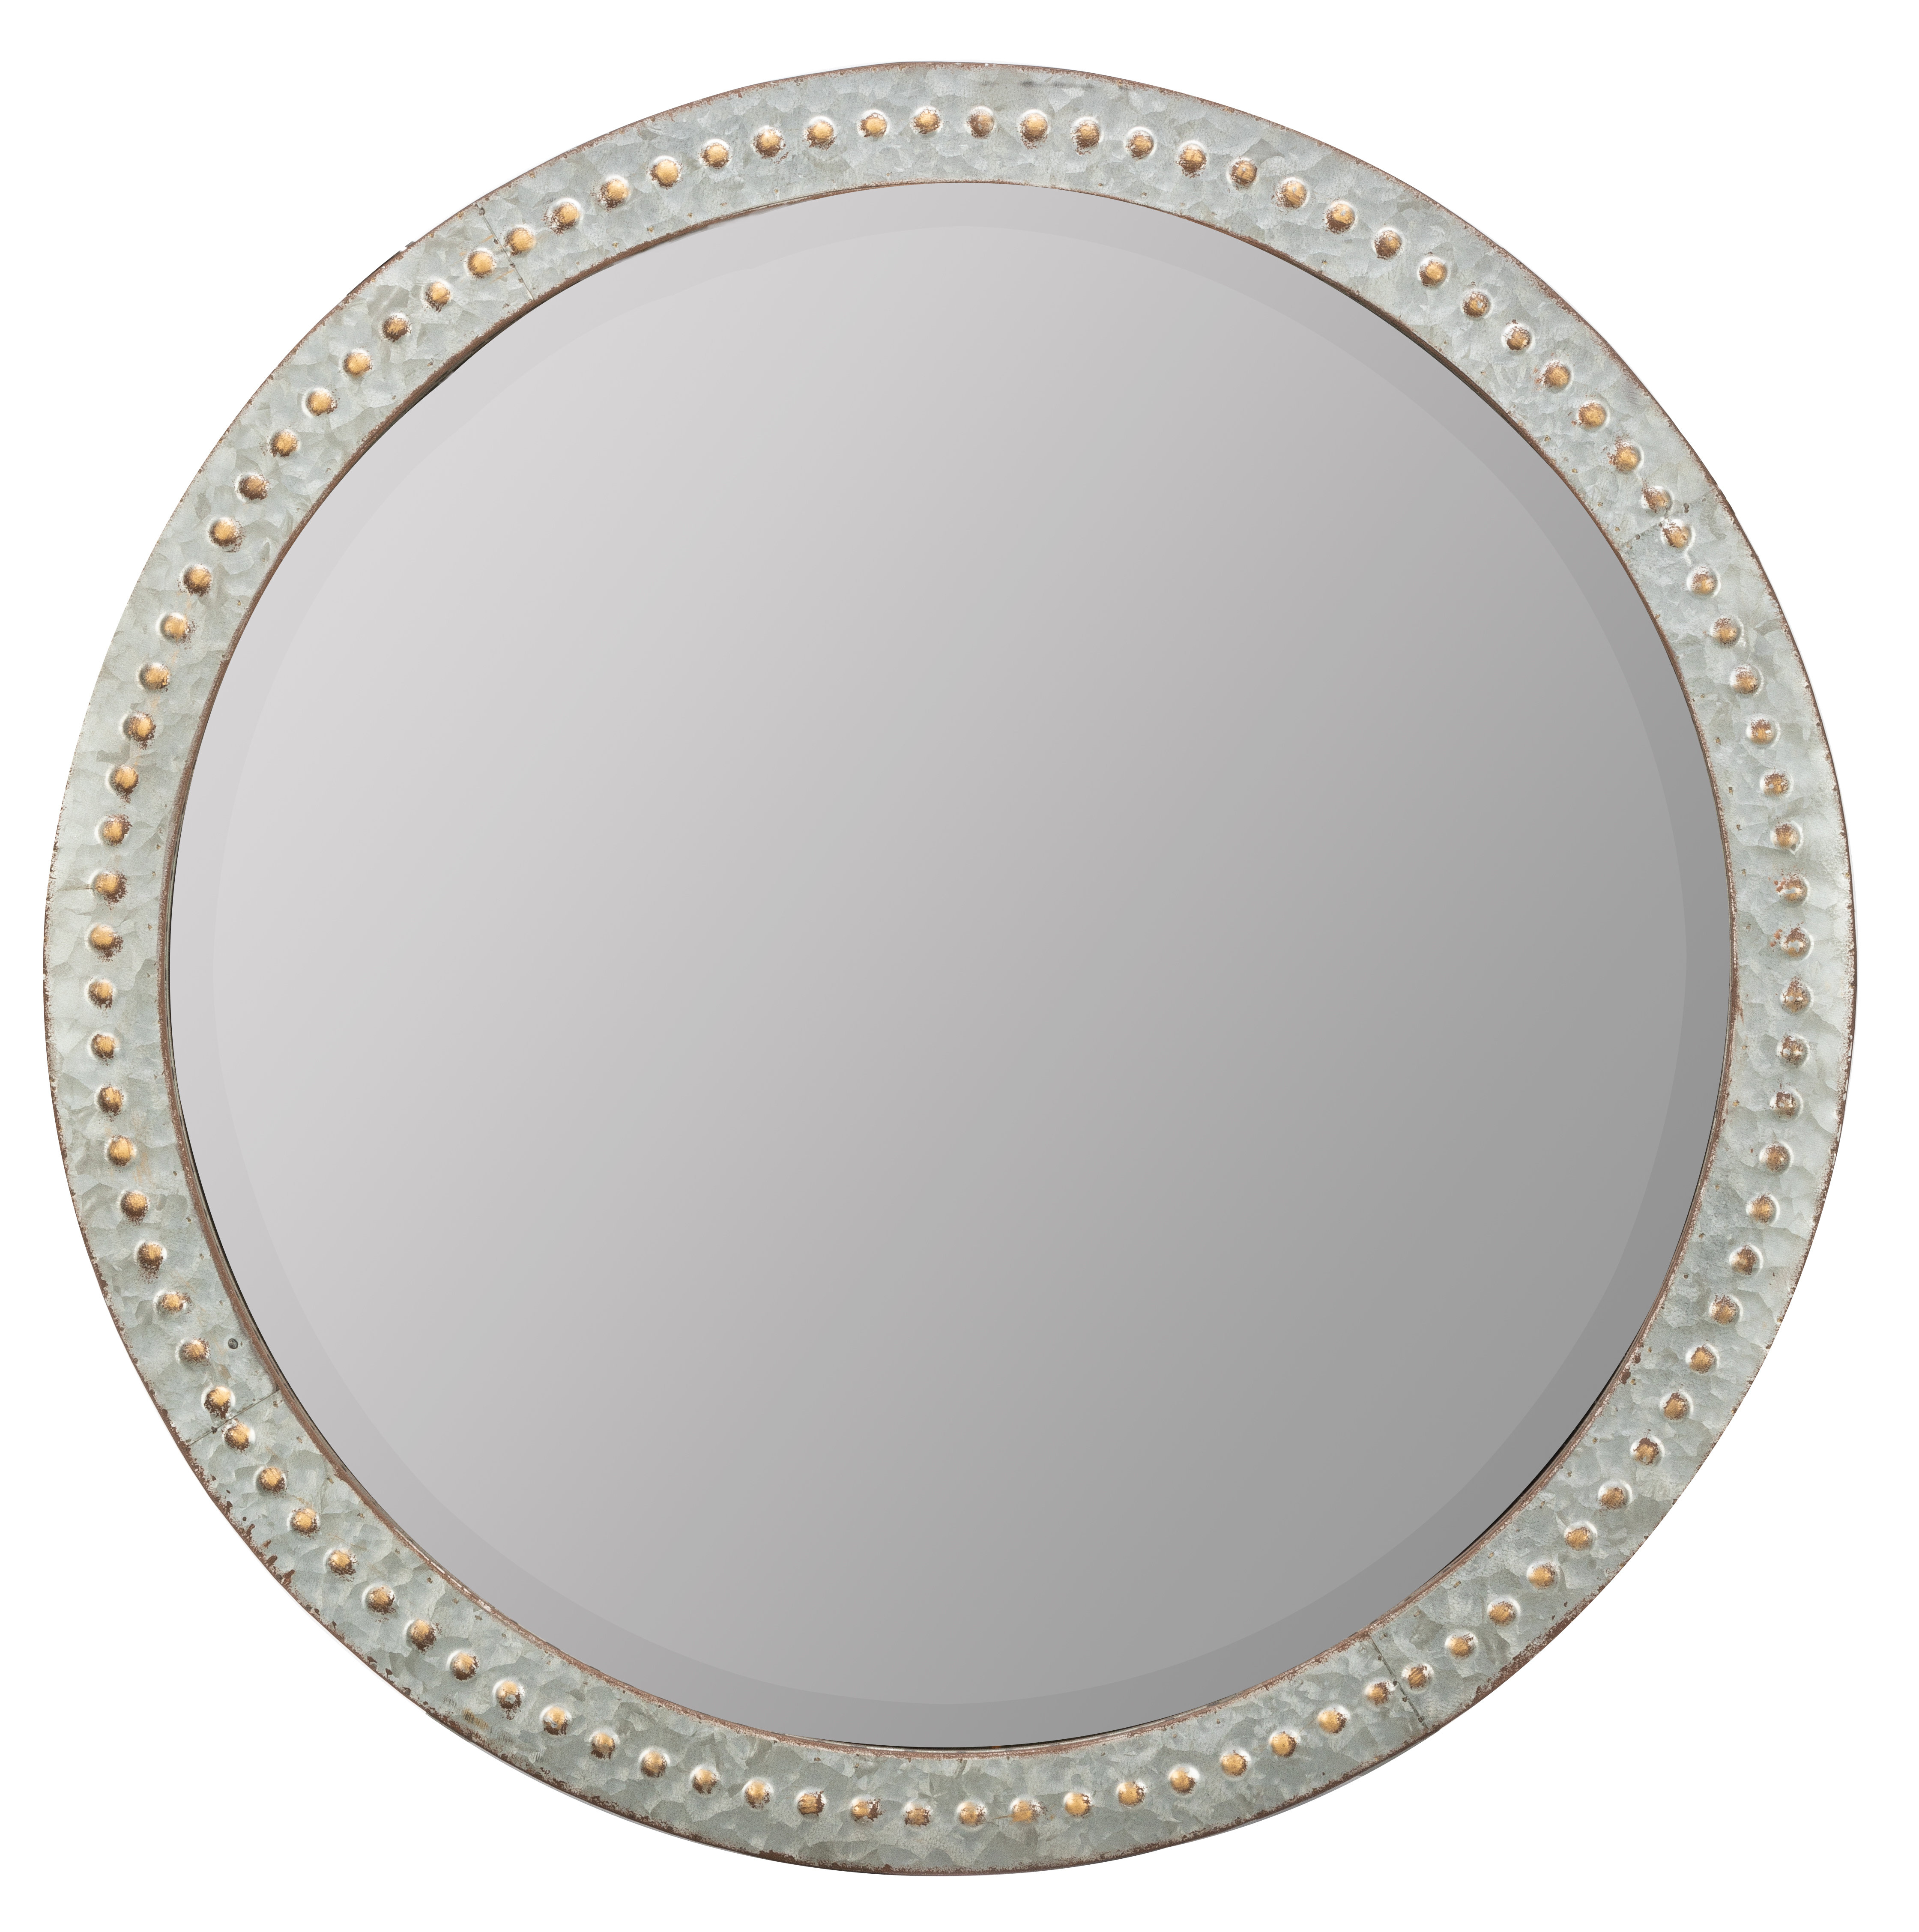 Orval Beveled Wall Mirror | Joss & Main In Glen View Beaded Oval Traditional Accent Mirrors (View 18 of 20)